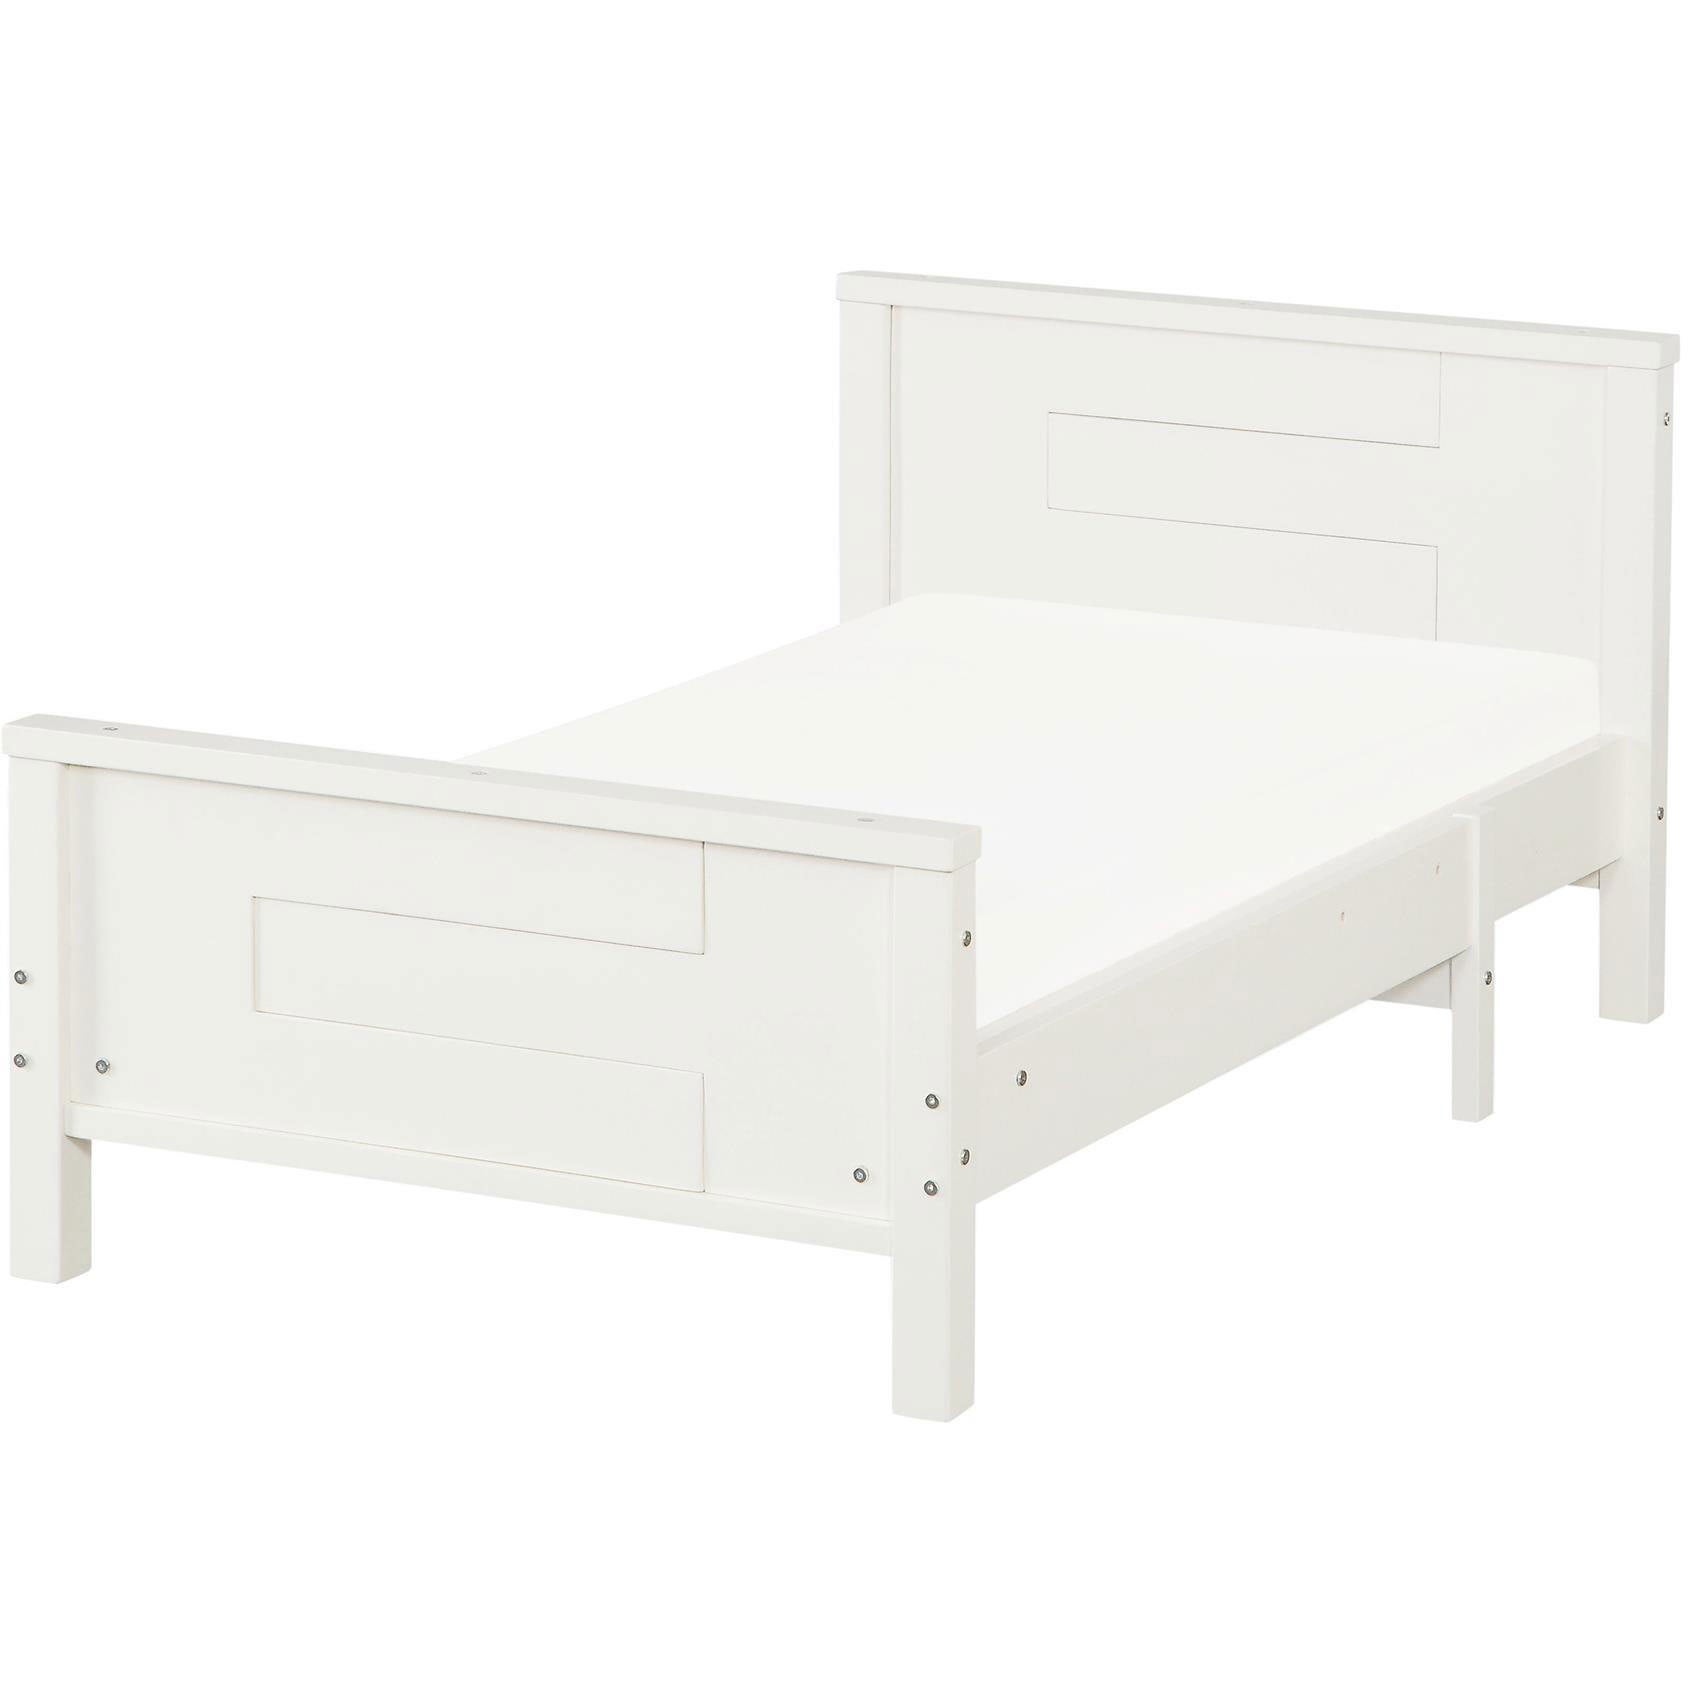 Baby Relax Phases And Stages White Toddler To Twin Convertible Bed Overstock 10574891